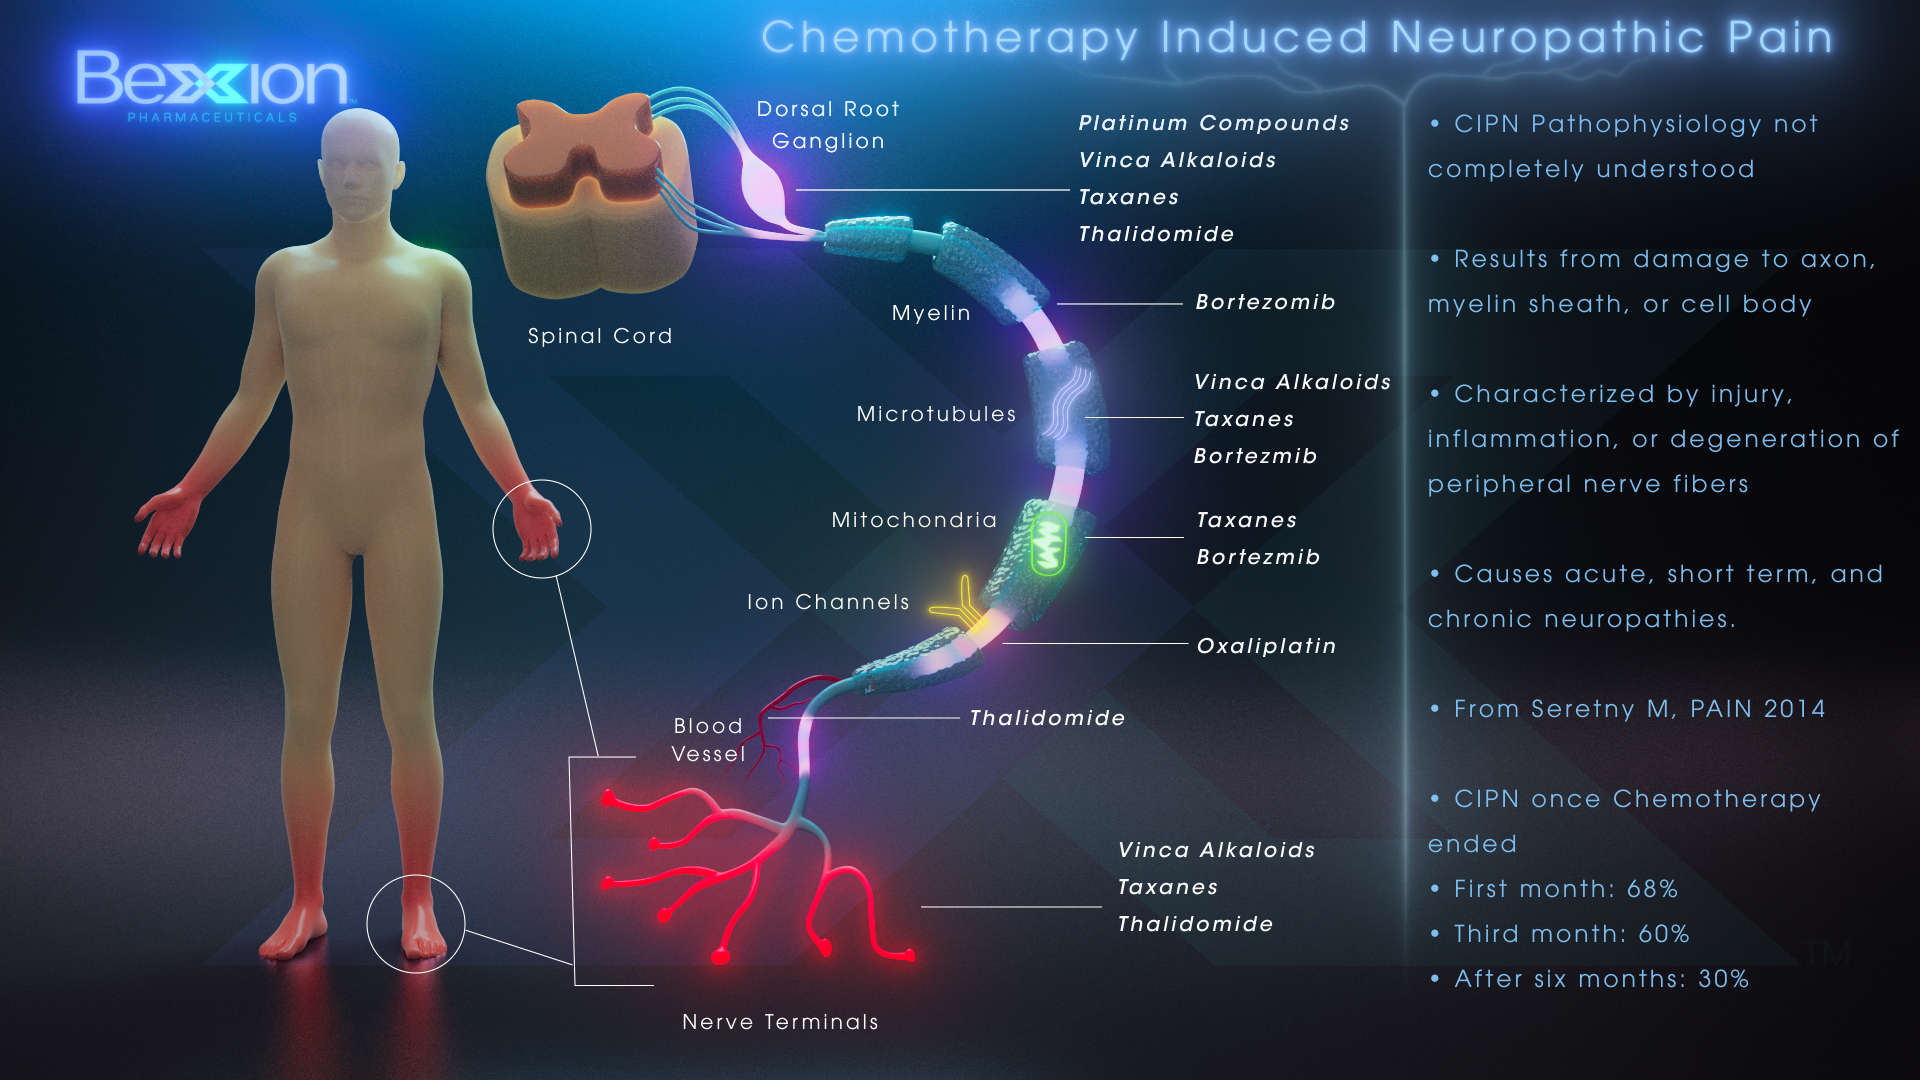 Chemotherapy Induced